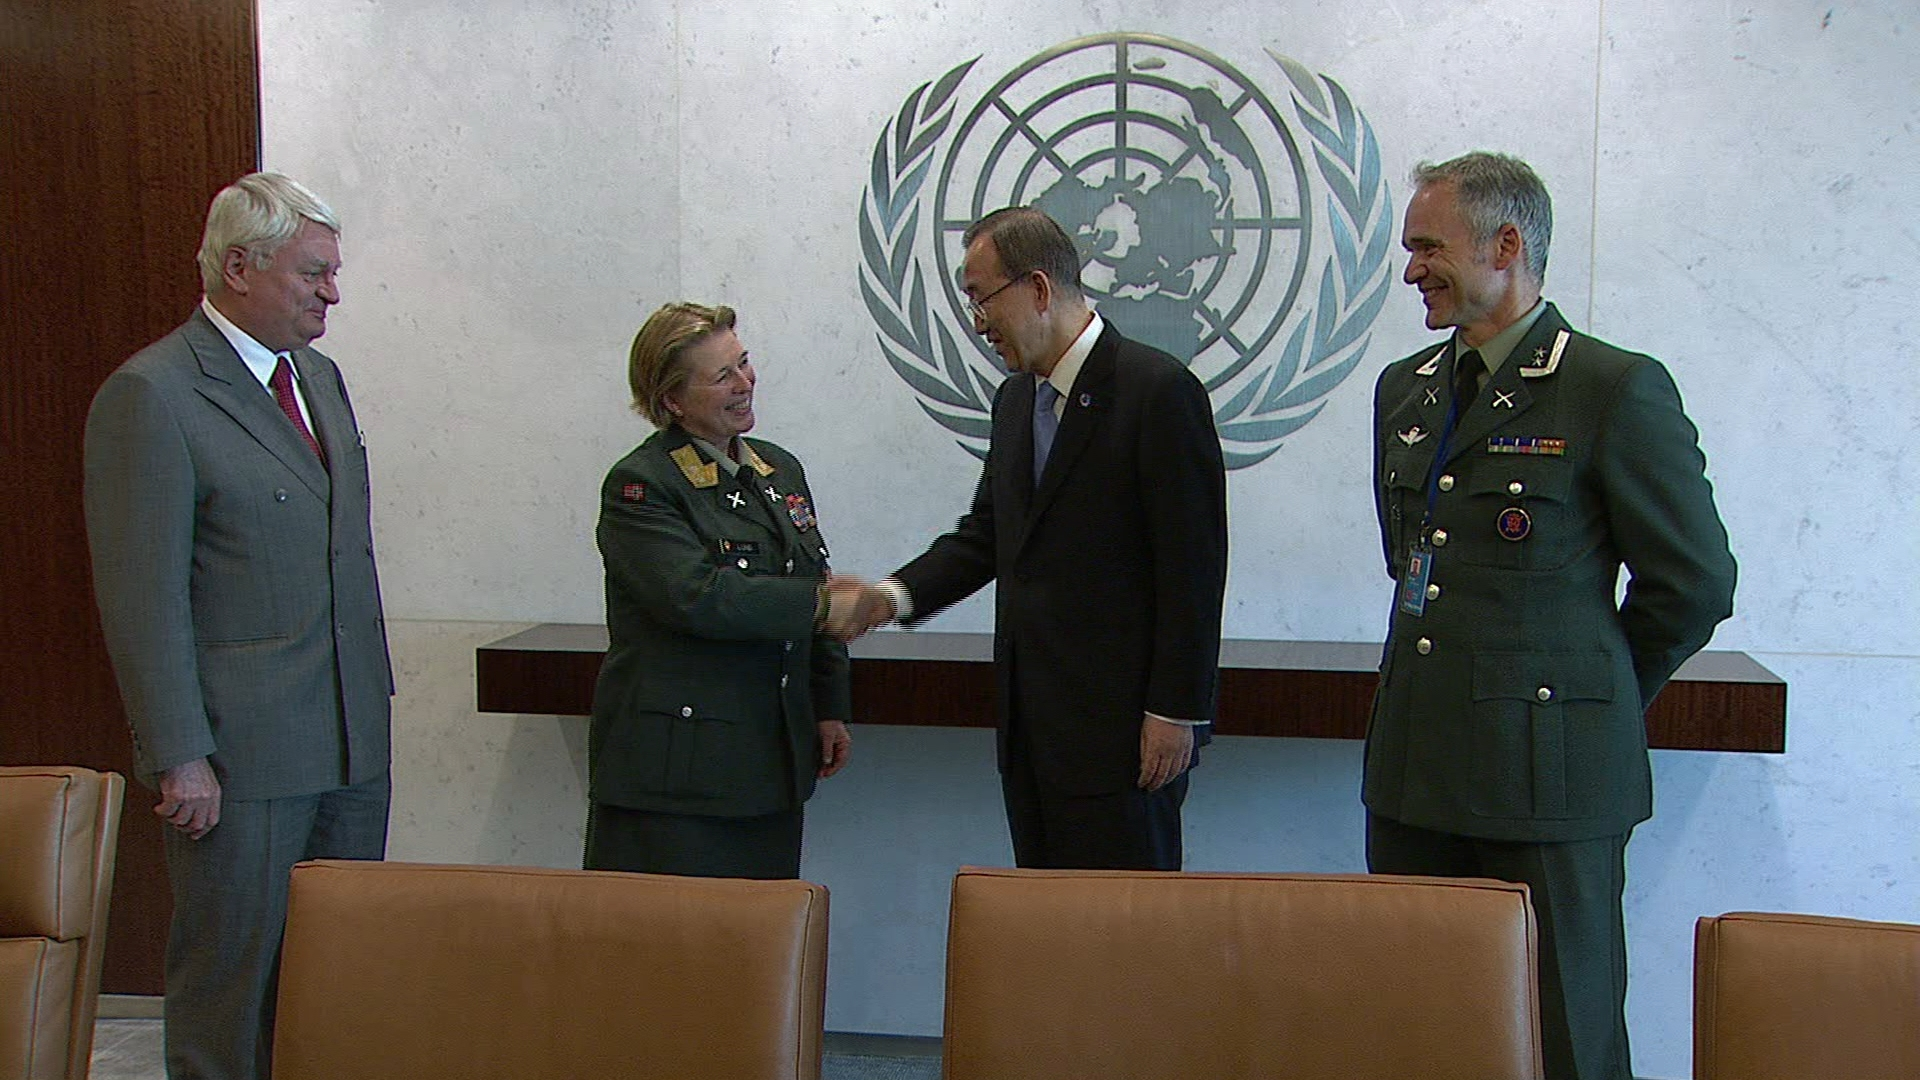 UN  FEMALE FORCE COMMANDER